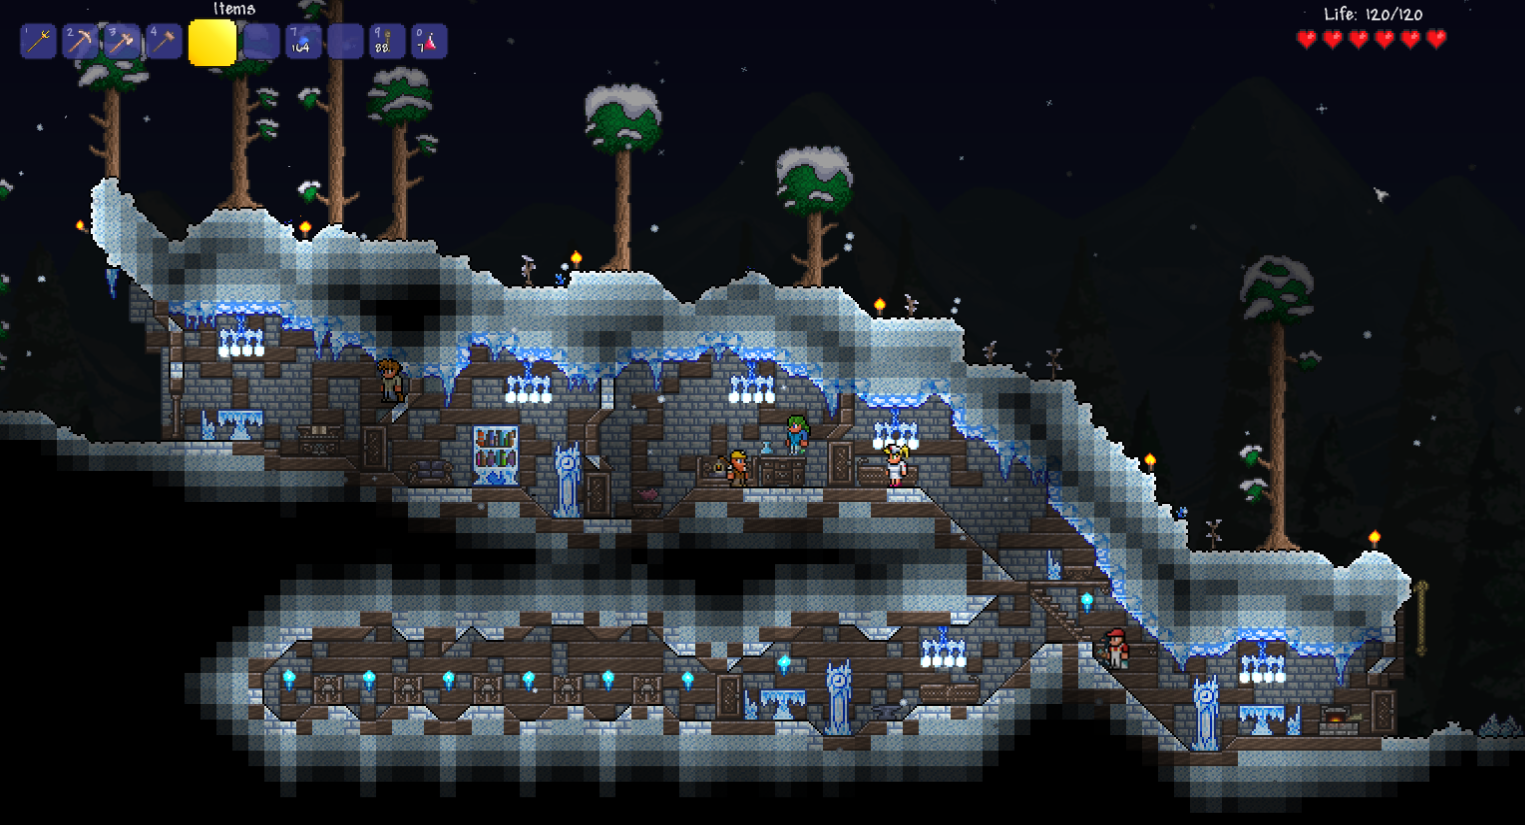 How To Make An Underground House In Terraria - Round Designs Best Terraria House Design Html on terraria home design, best runescape house design, best tiny house design, best minecraft house design, terraria tree house design, cool terraria castle design, terraria npc house design,